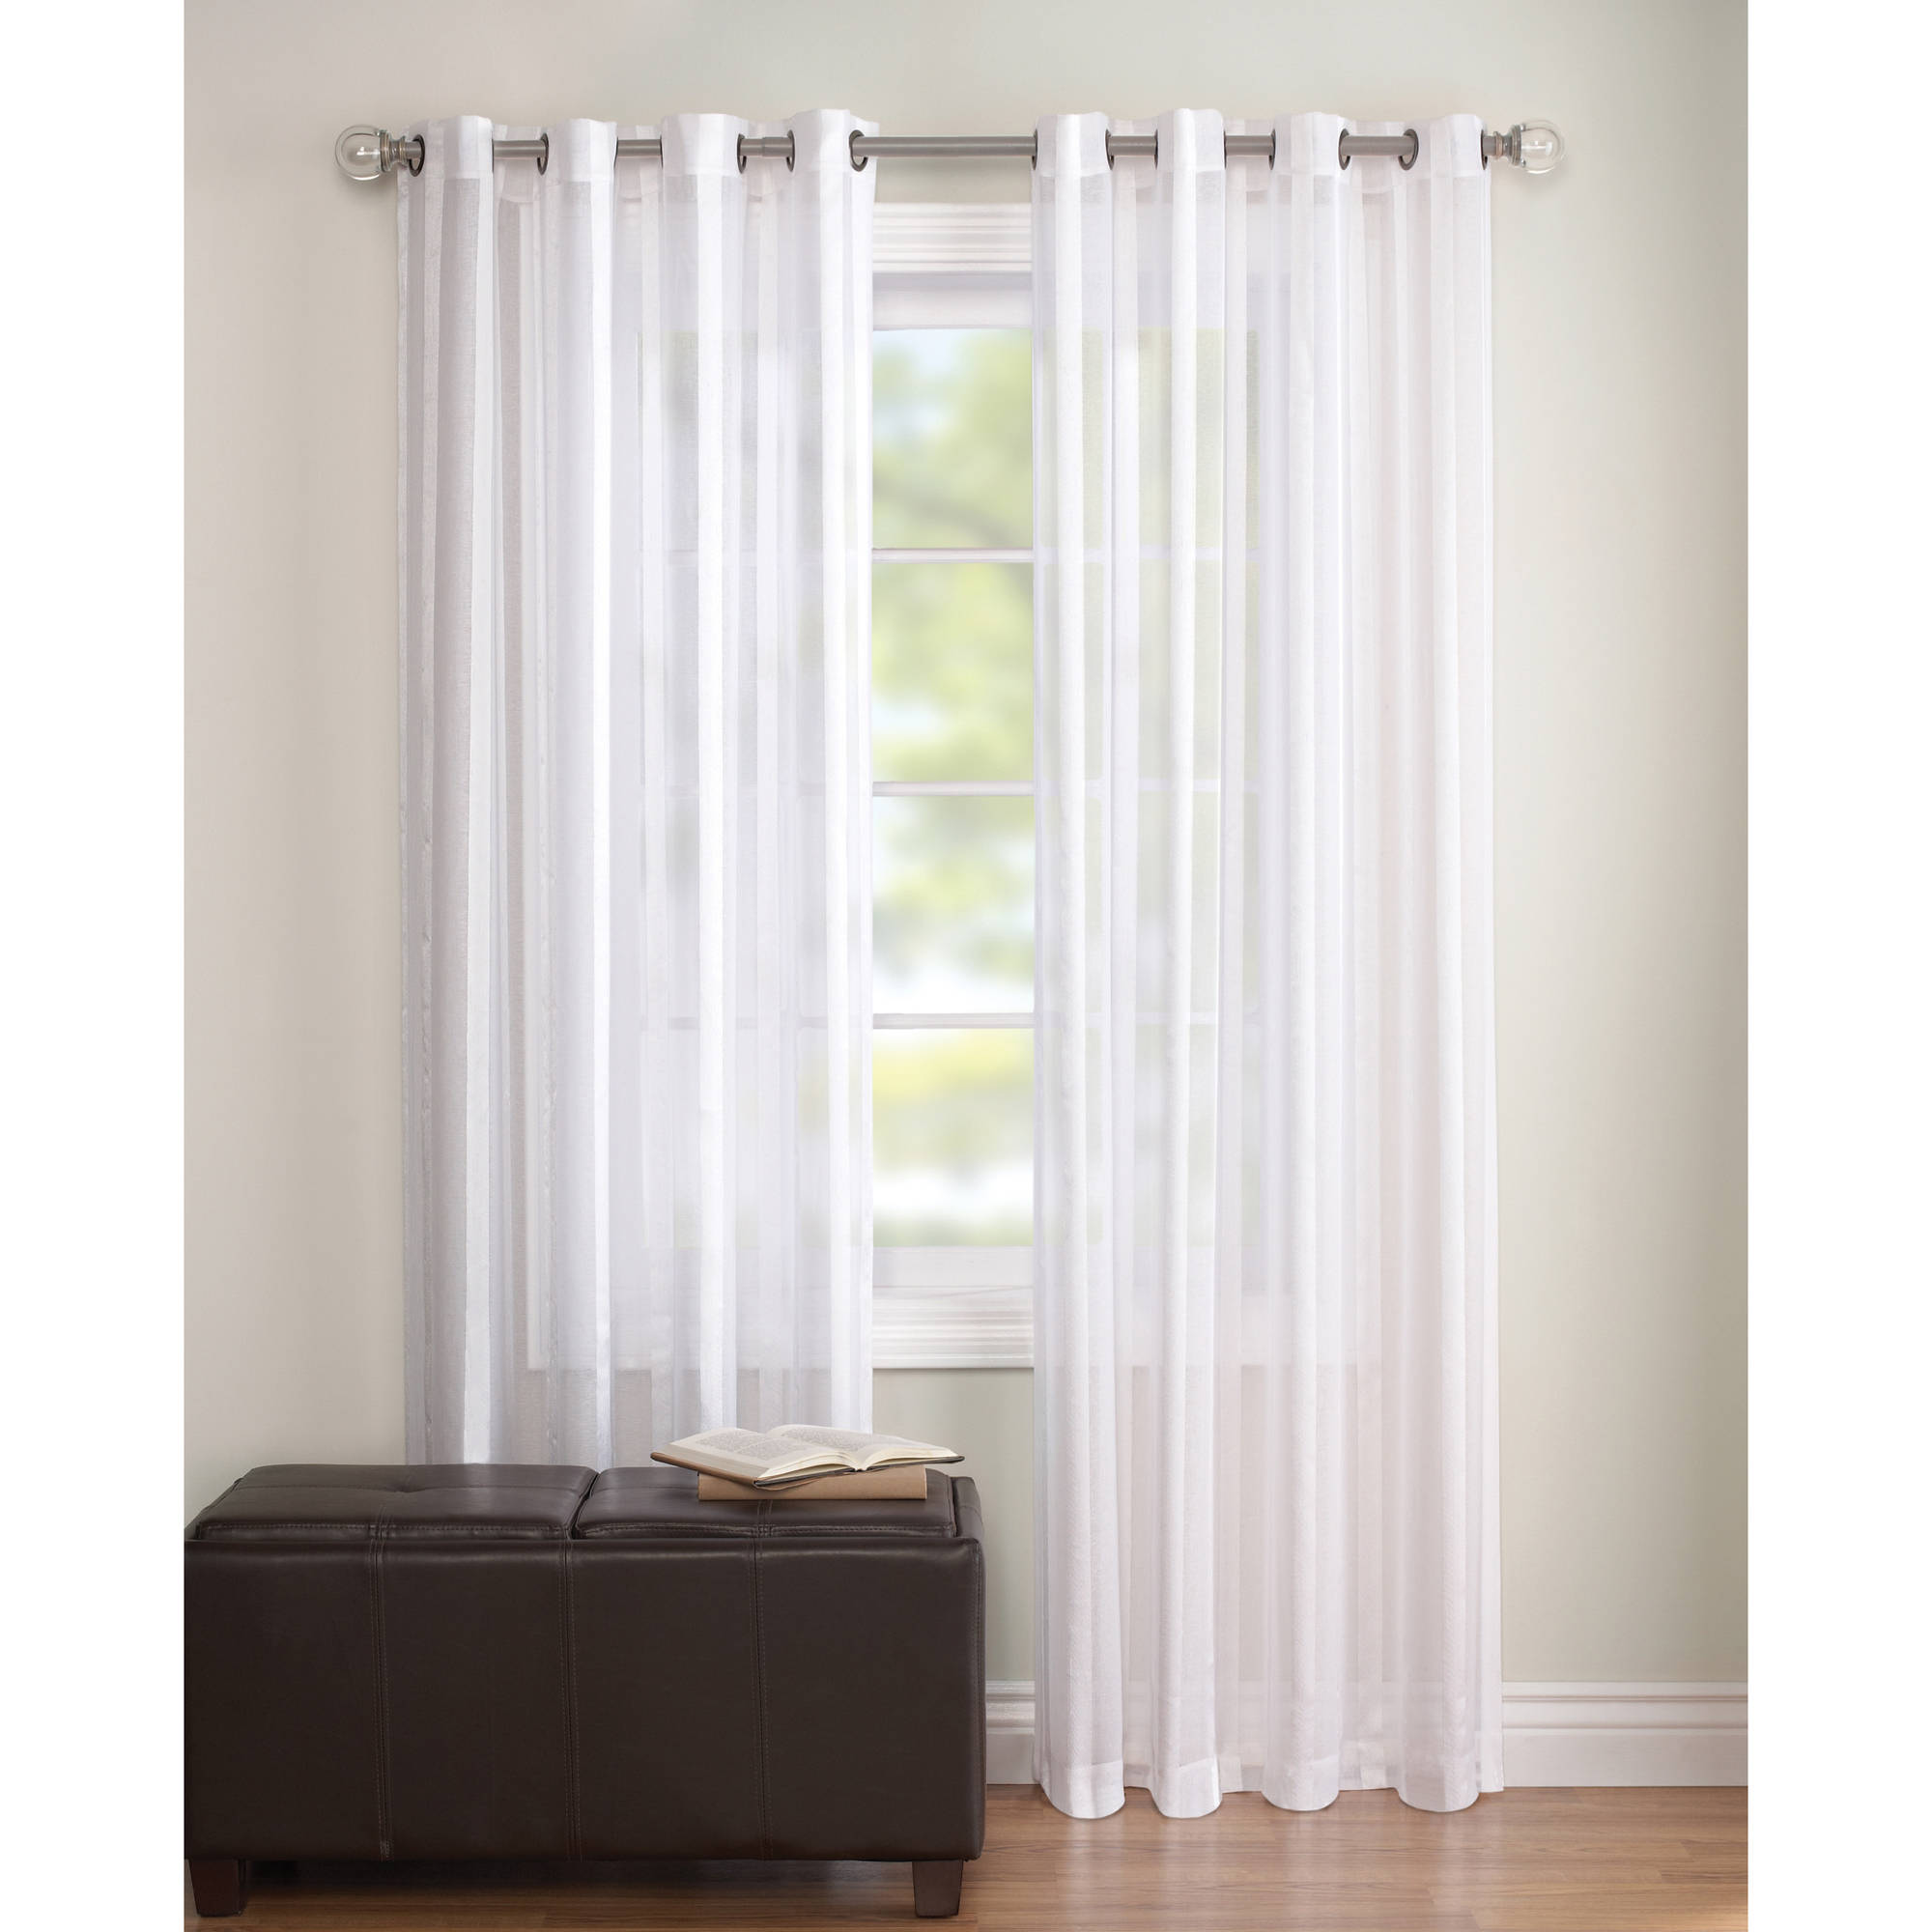 better homes gardens embroidered sheer curtain panel walmartcom - White Sheer Curtains